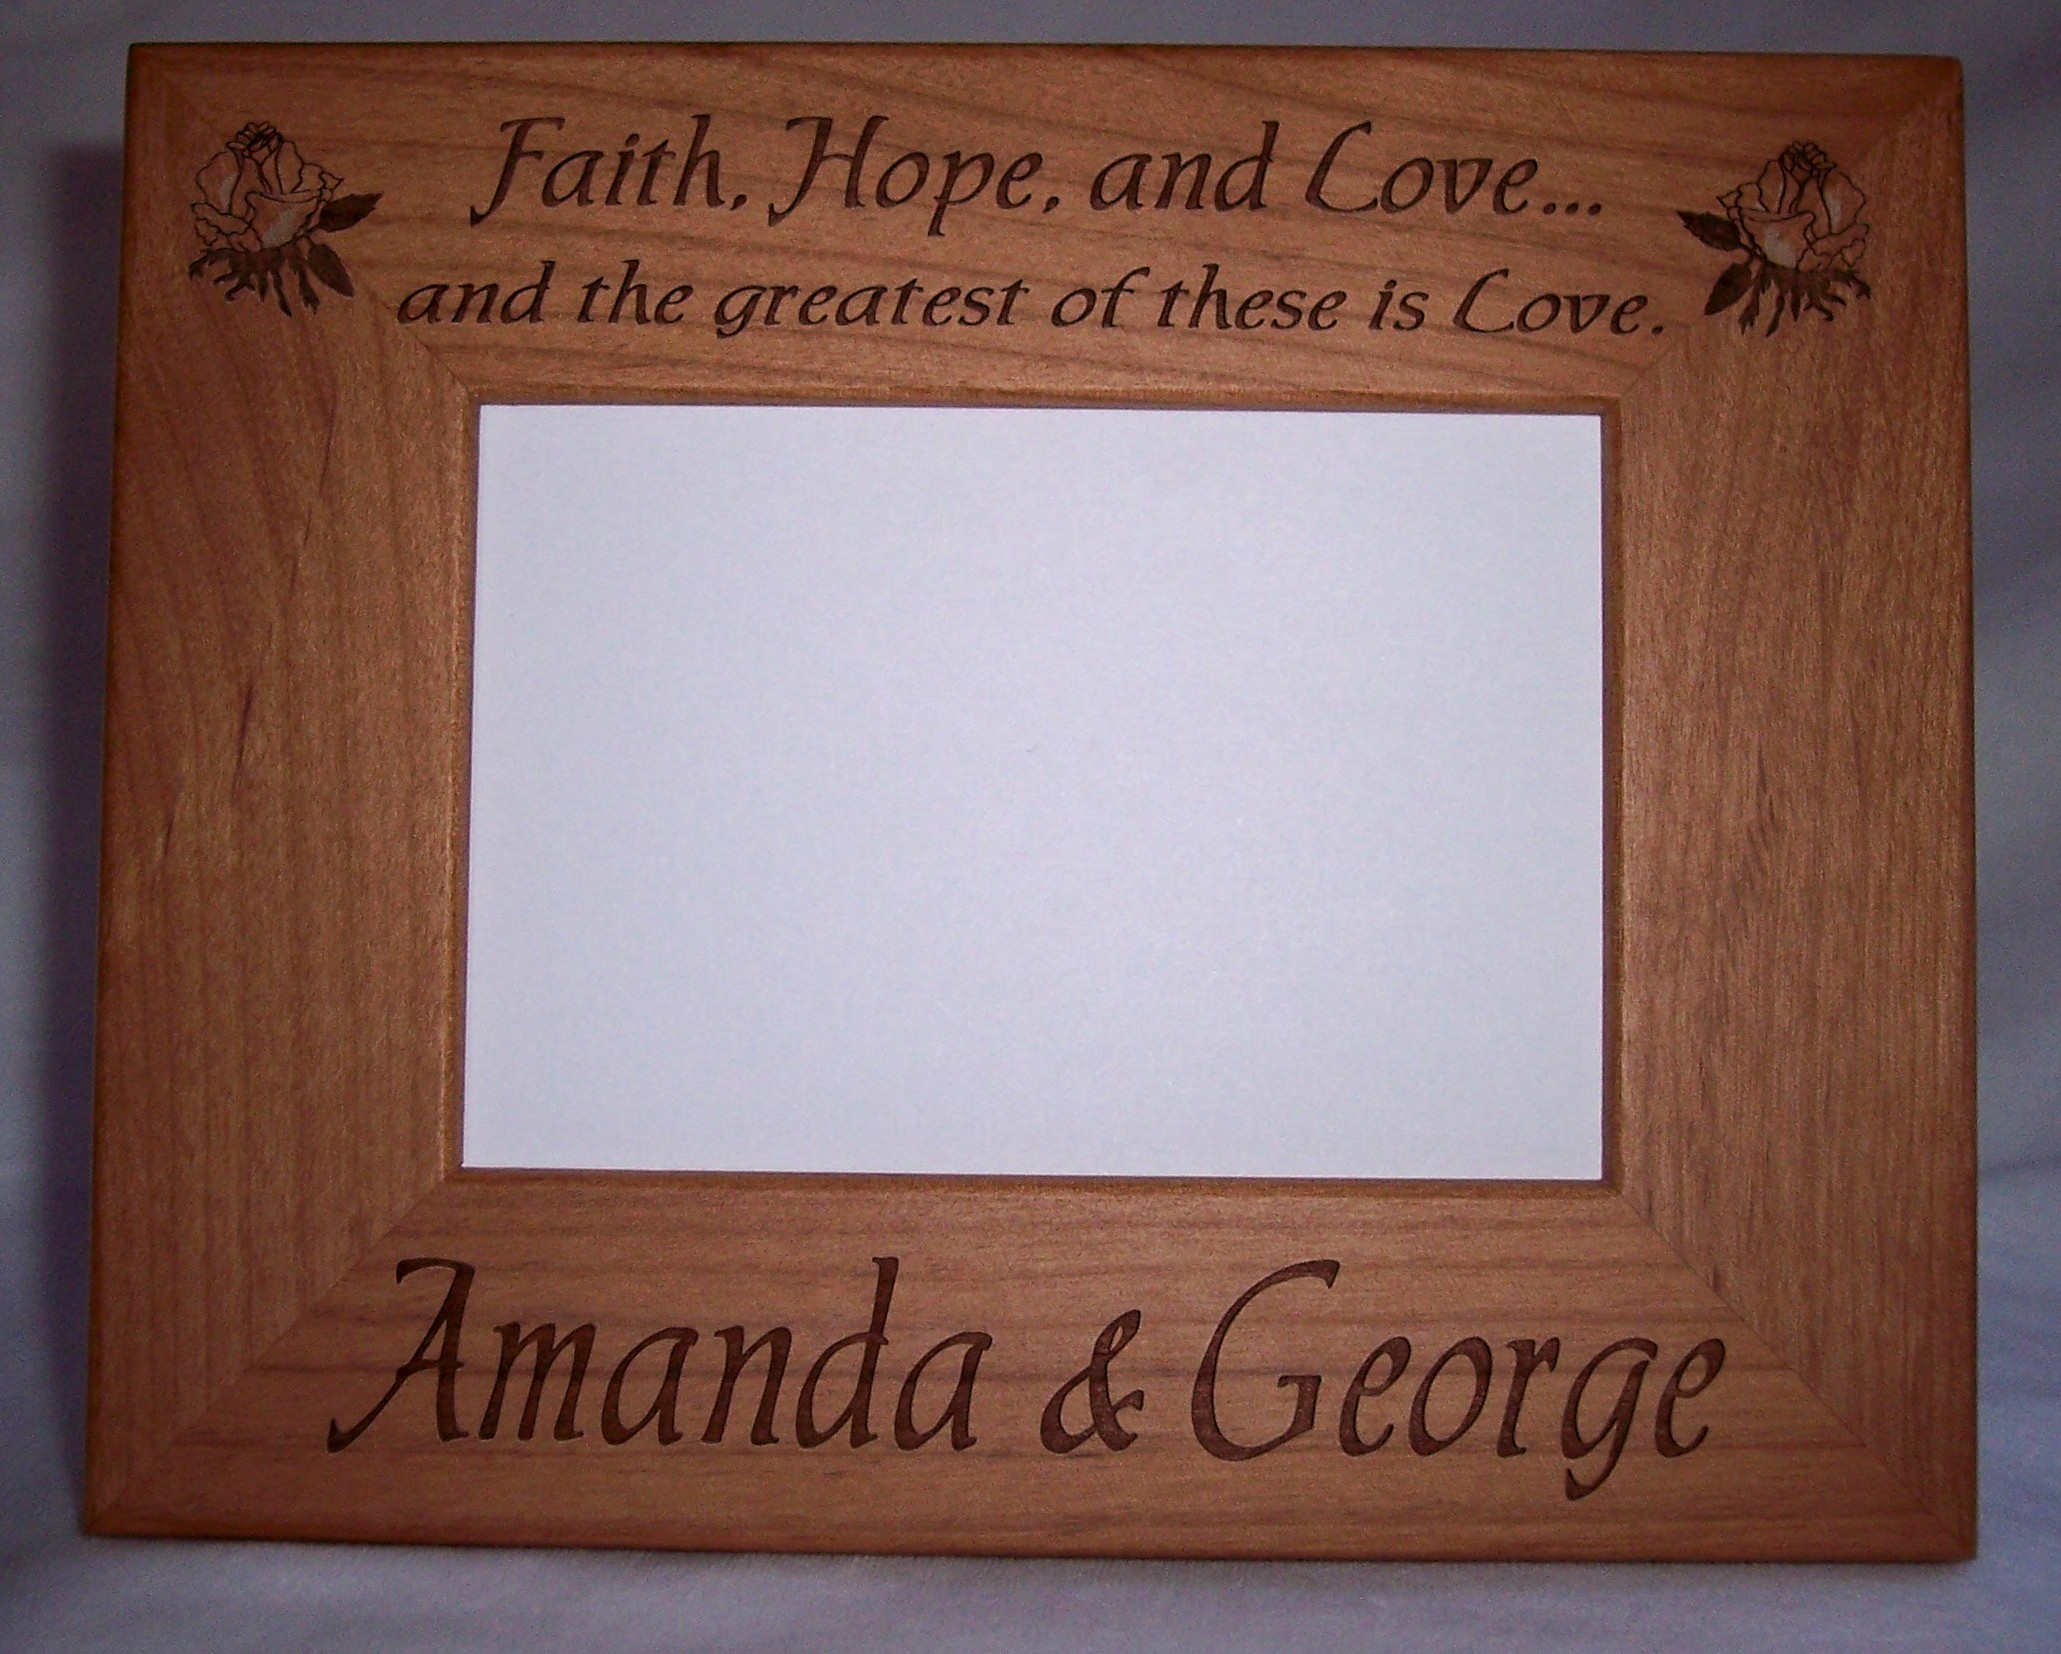 straight edge and rounded edge frames all alder and walnut frames come with glass and have - Engraved Picture Frame